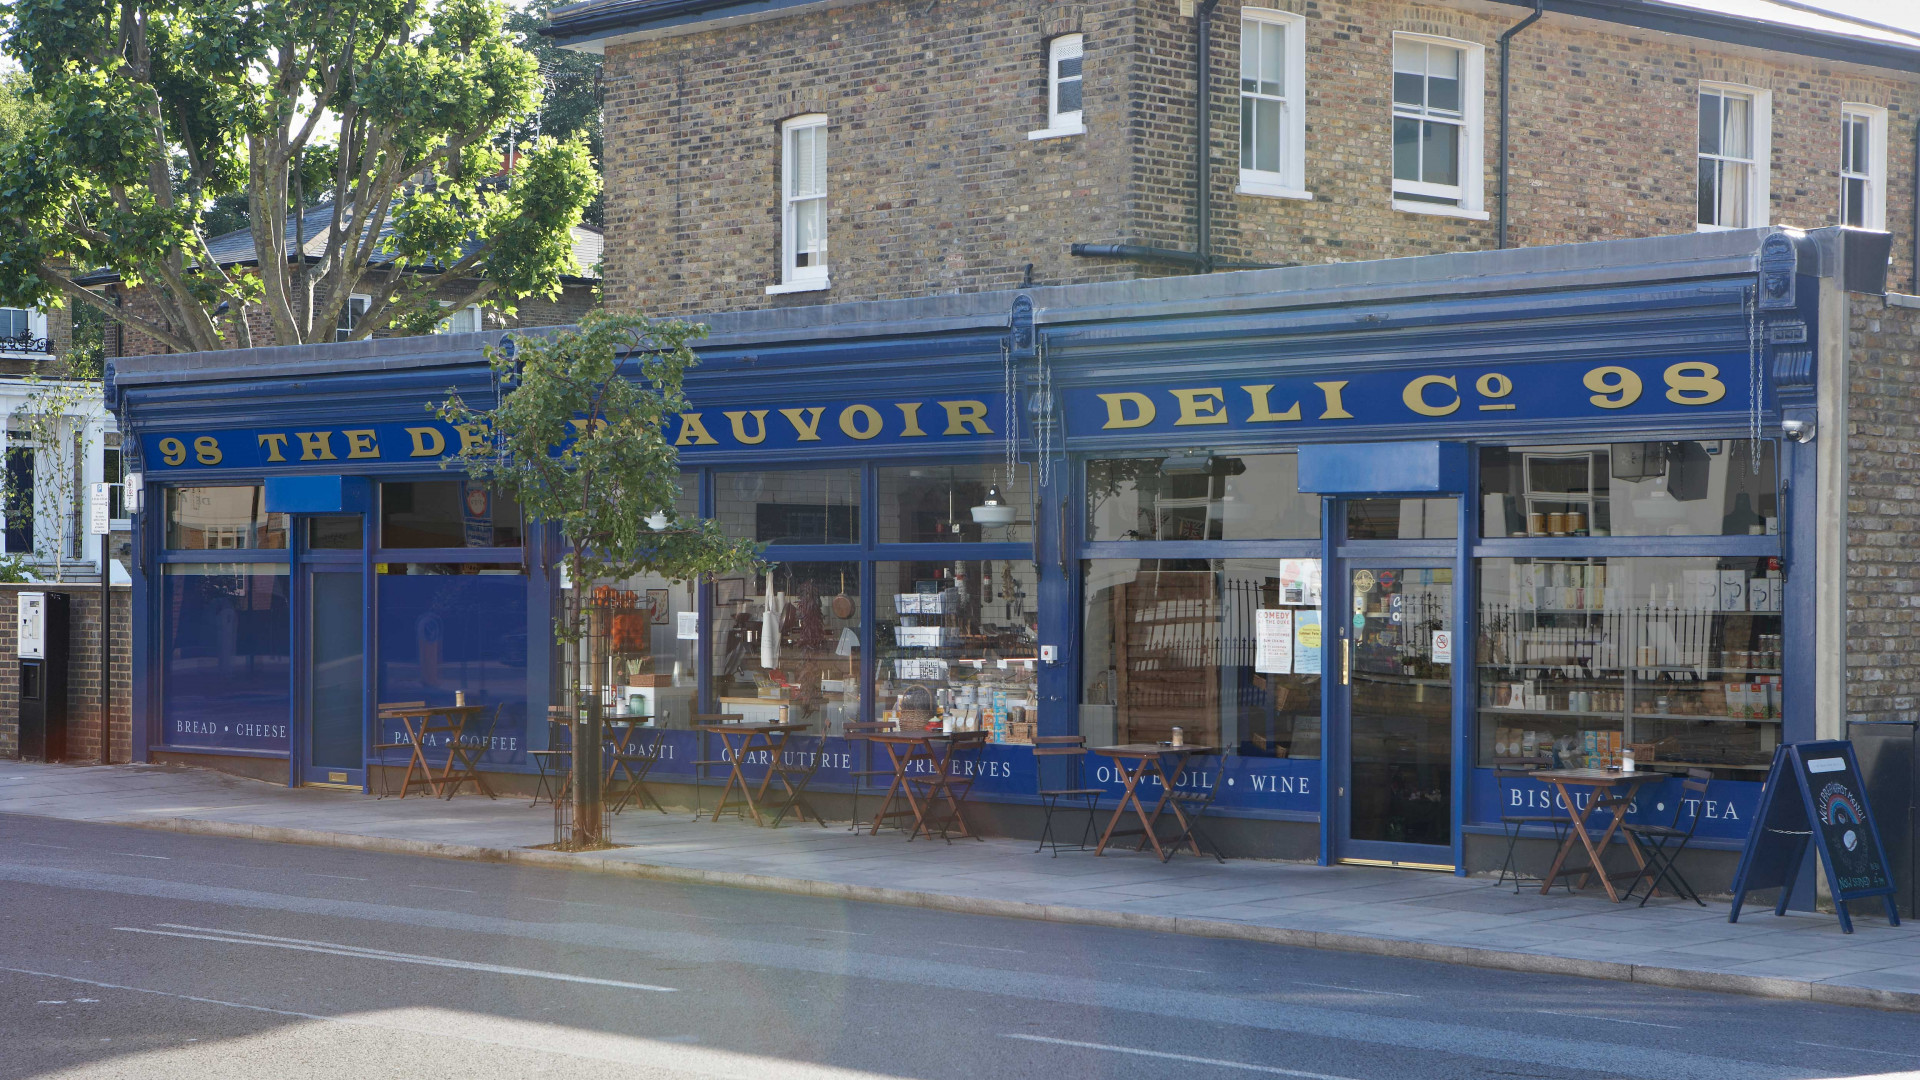 The De Beauvoir Deli